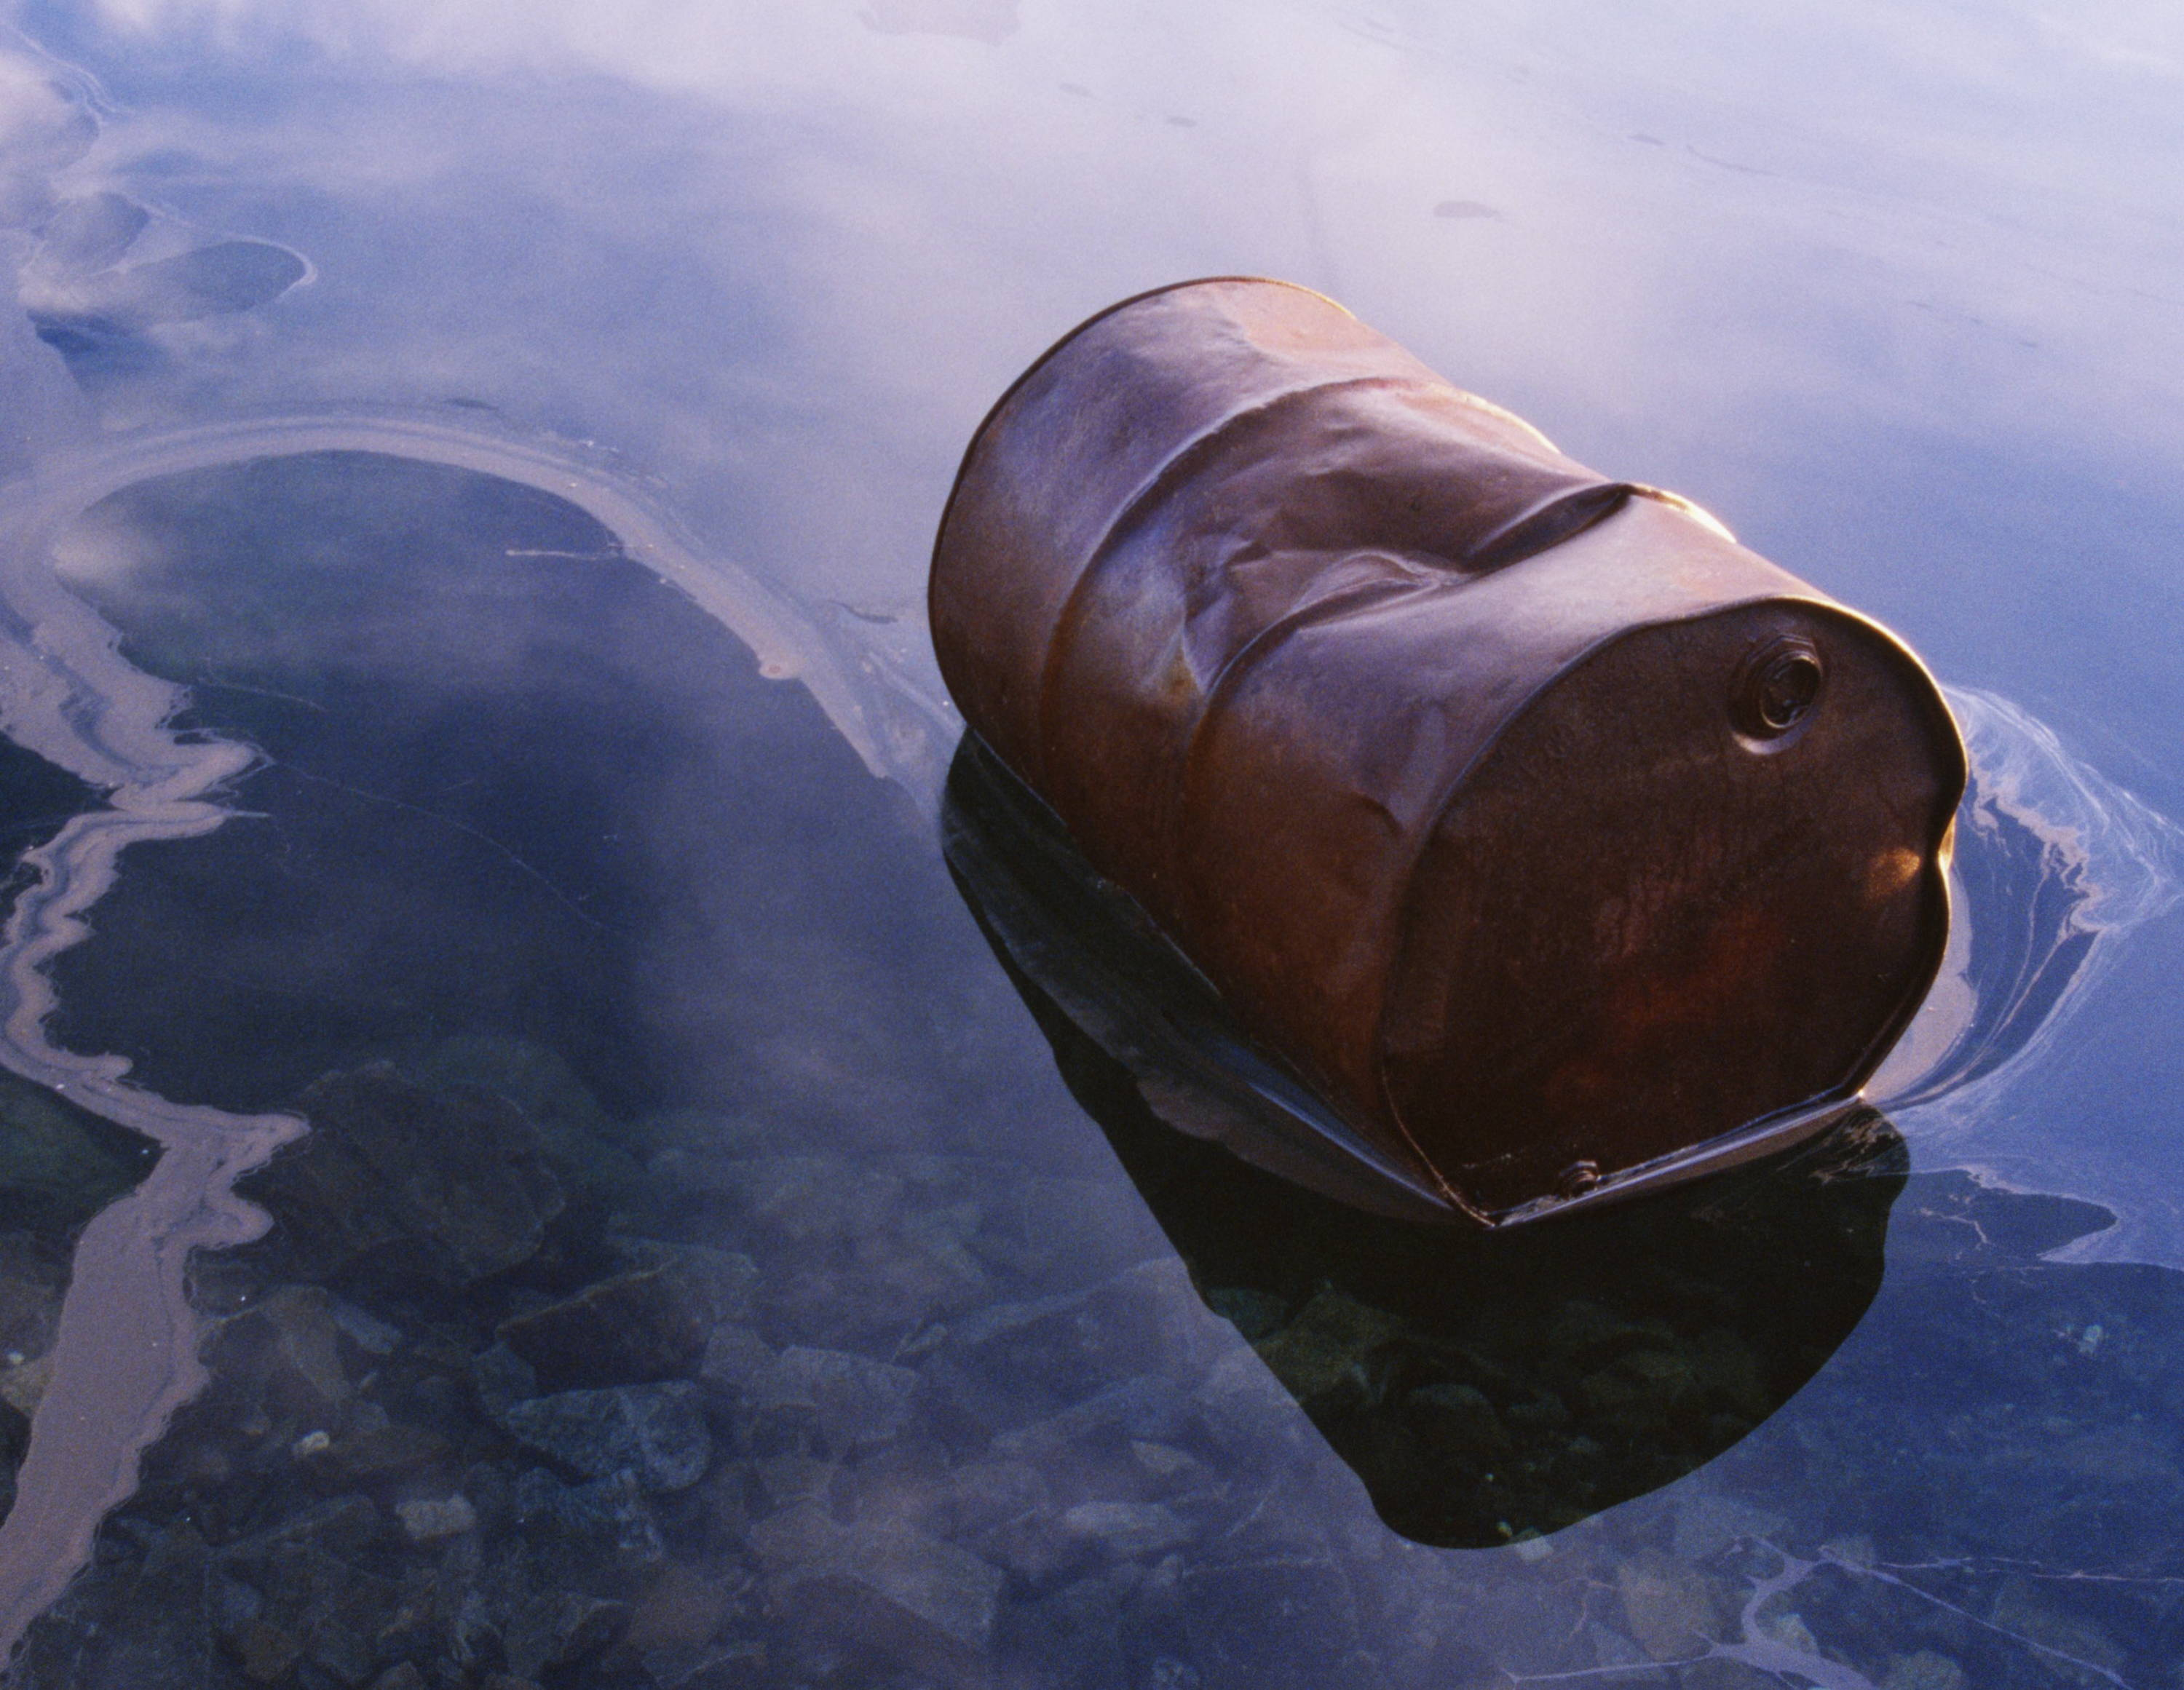 A barrel floating in polluted water